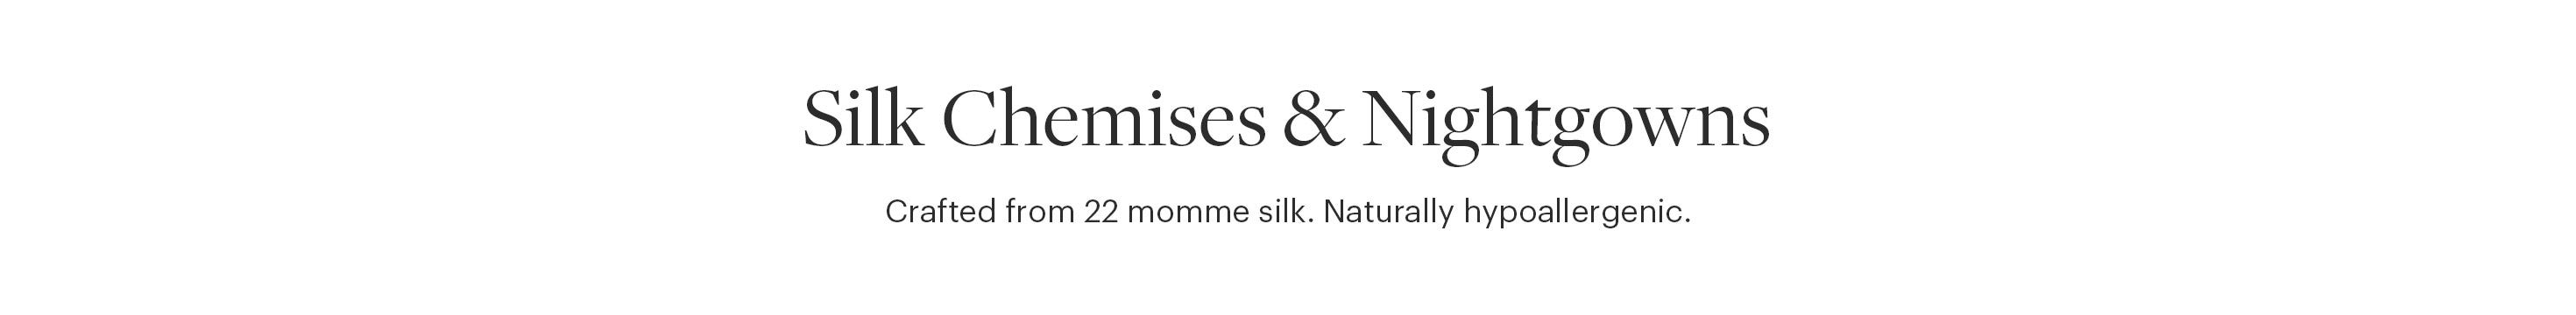 Silk Chemises & Nightgowns